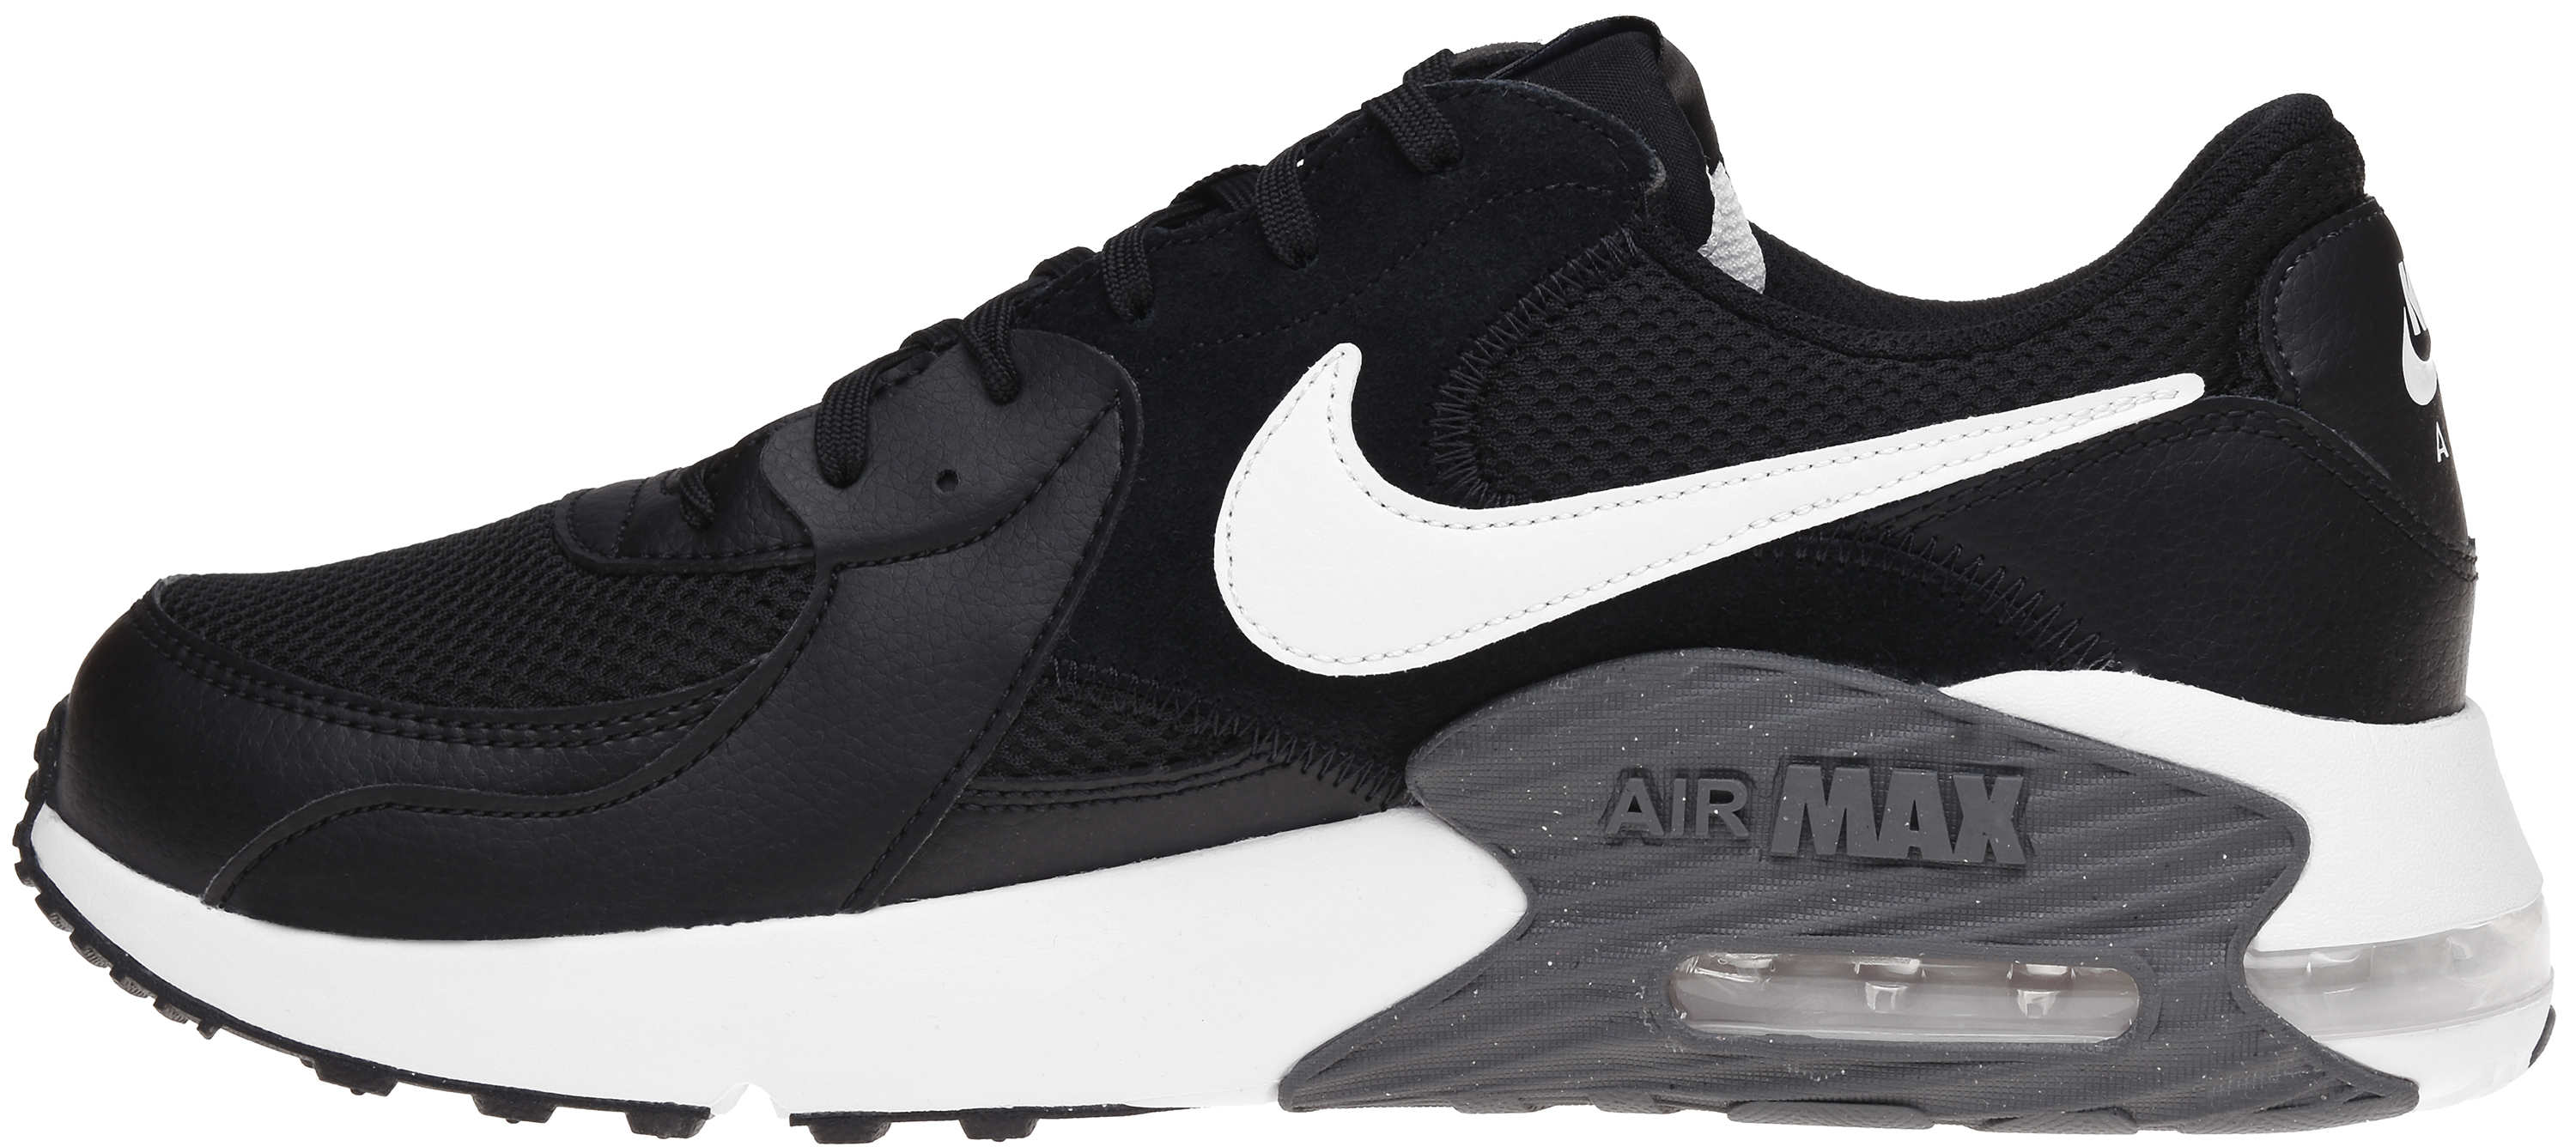 Nike Кроссовки мужские Nike Air Max Excee, размер 43 кроссовки nike nike ni464abbdqe1